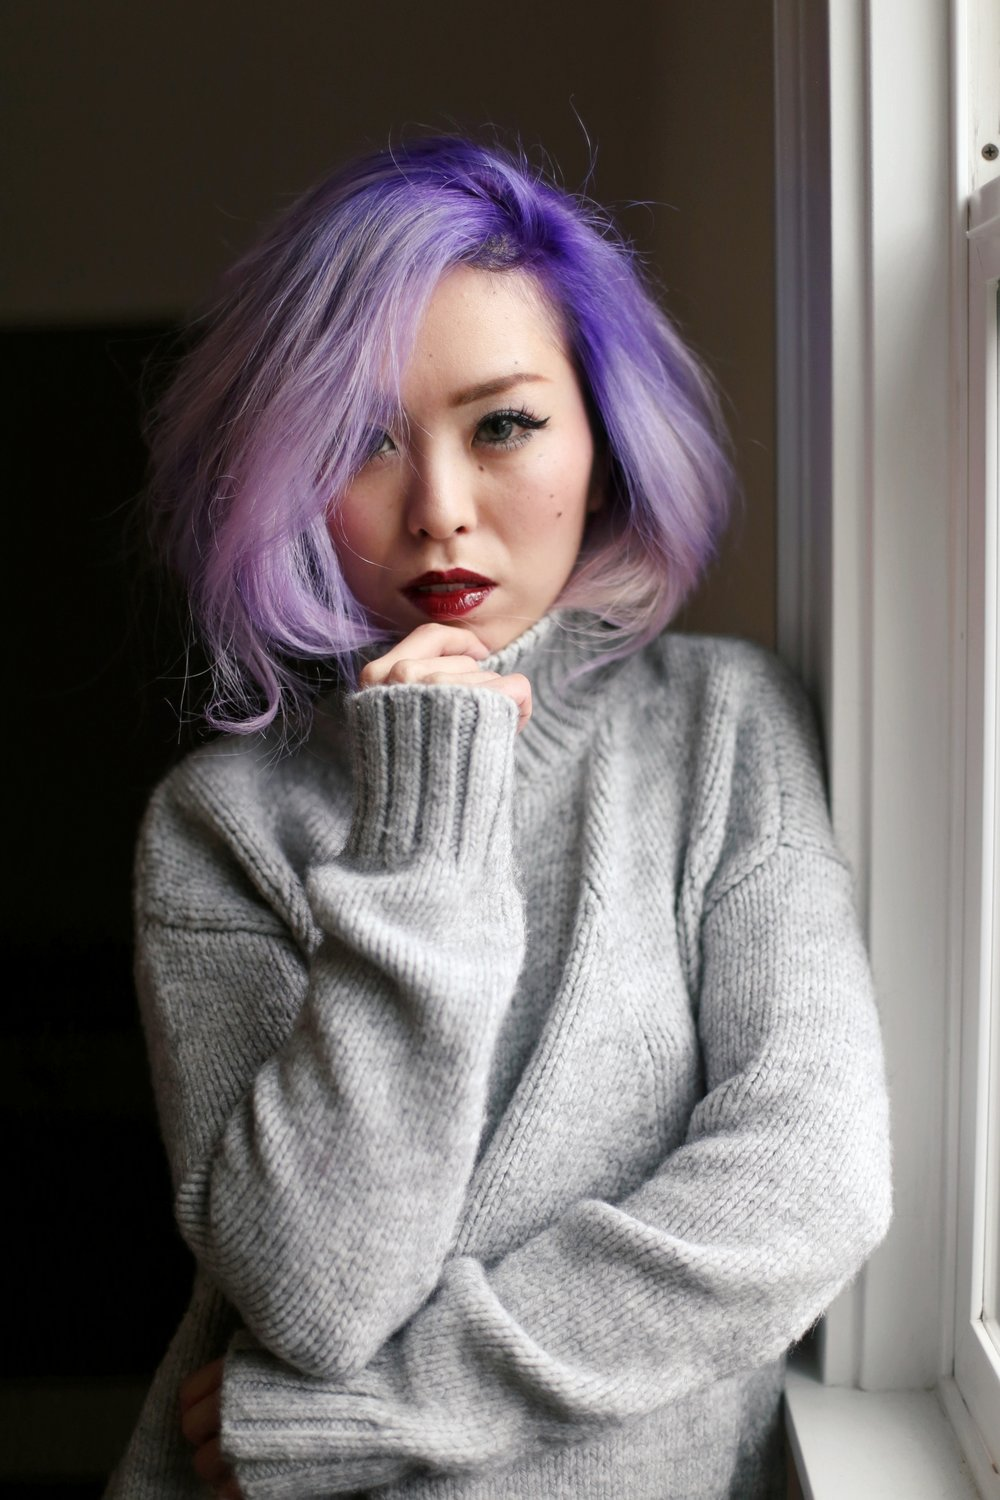 Boudoir+Photo-black+and+white+photography-sweater+weather-turtle+neck+sweater-black+lingerie-dark+lipstick-japanese-Aika's+Love+Closet-Seattle+model-Seattle+Style+blogger-Lavender+Hair-colored+Hair-Mermaid+Hair-zara+Sweater.jpeg